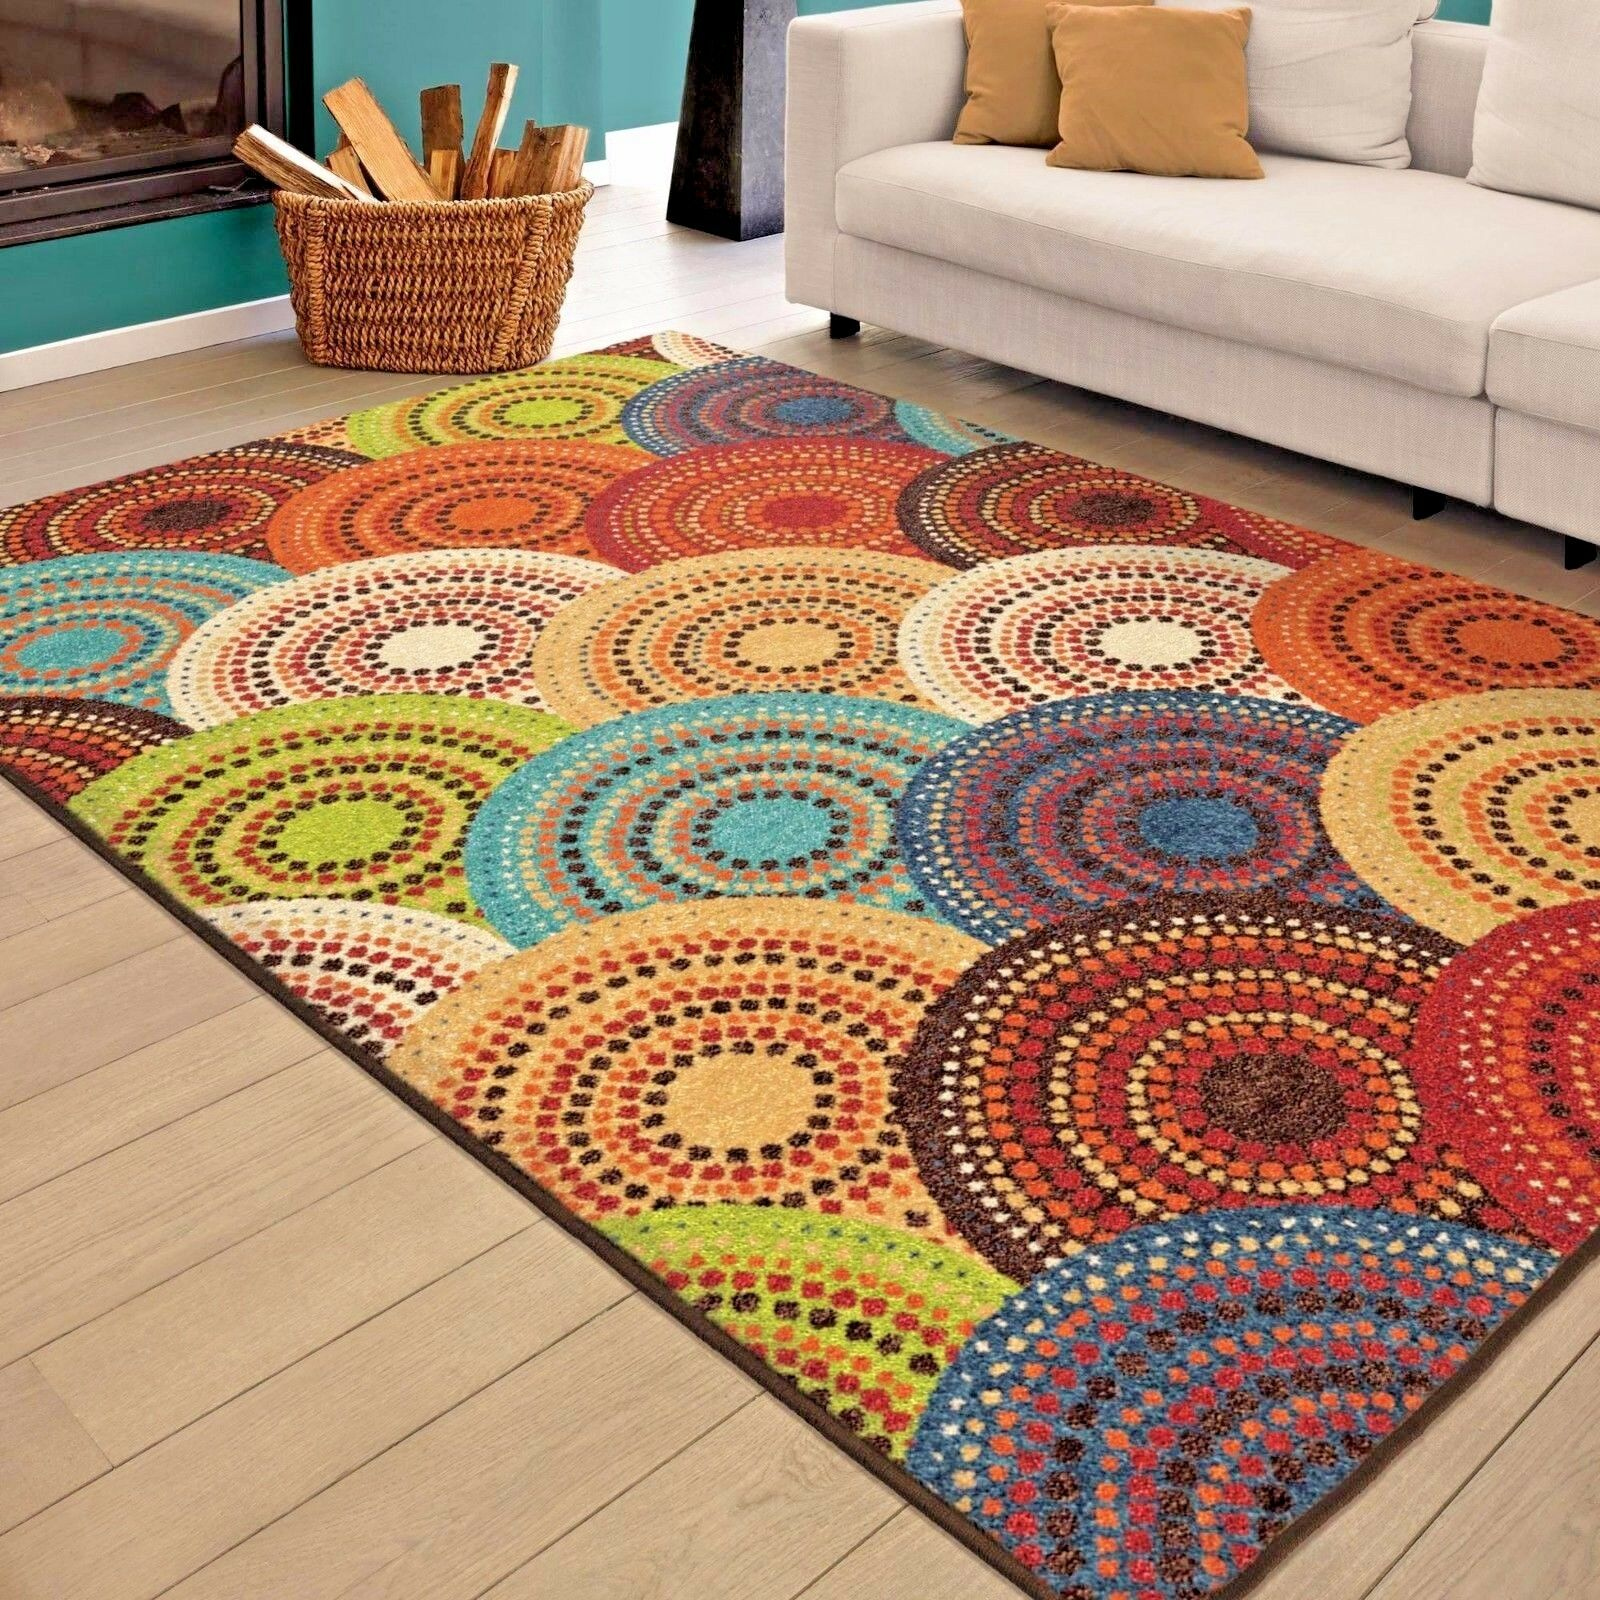 Rugs Area Rugs Carpet 8x10 Area Rug Floor Modern Colorful